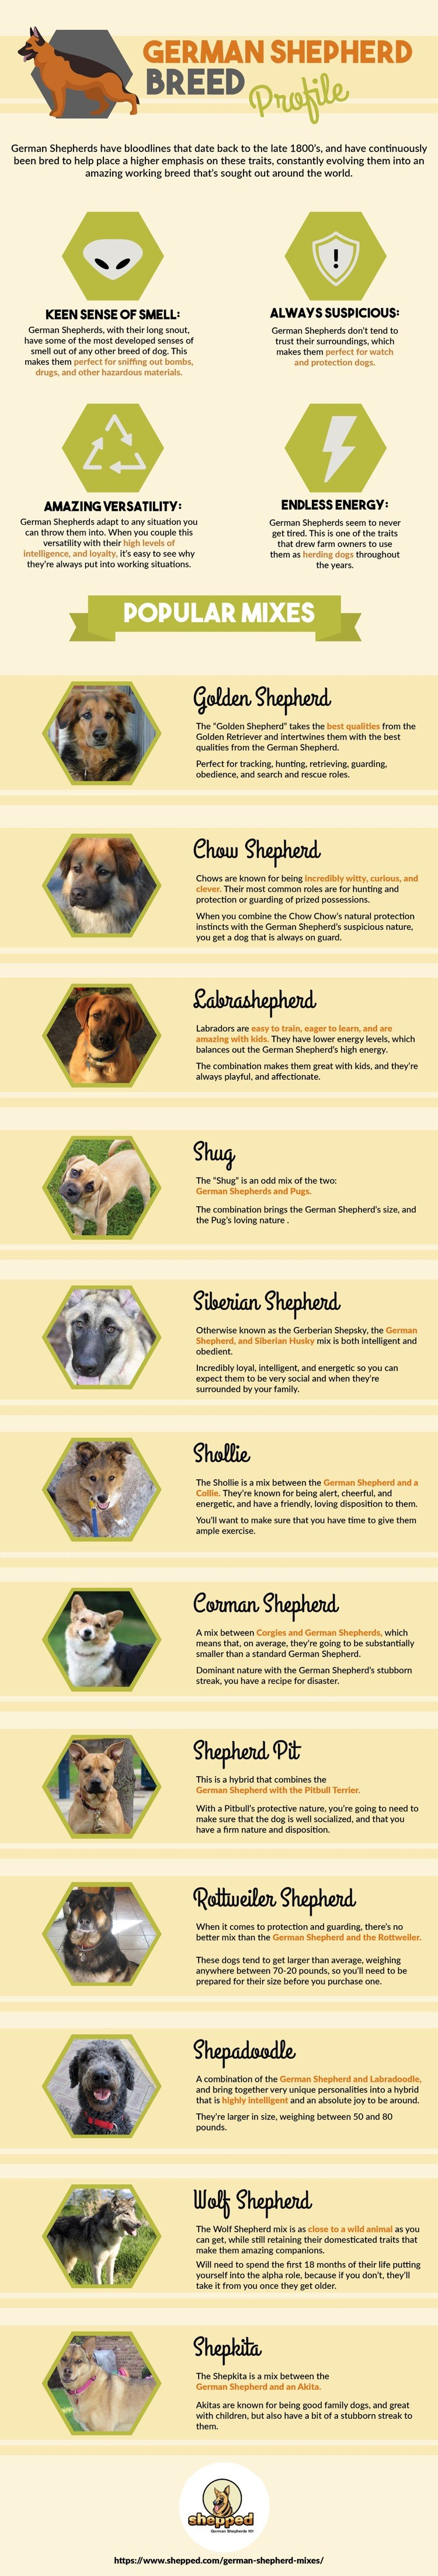 What Are The Most Popular German Shepherd Mixes | Shepped com